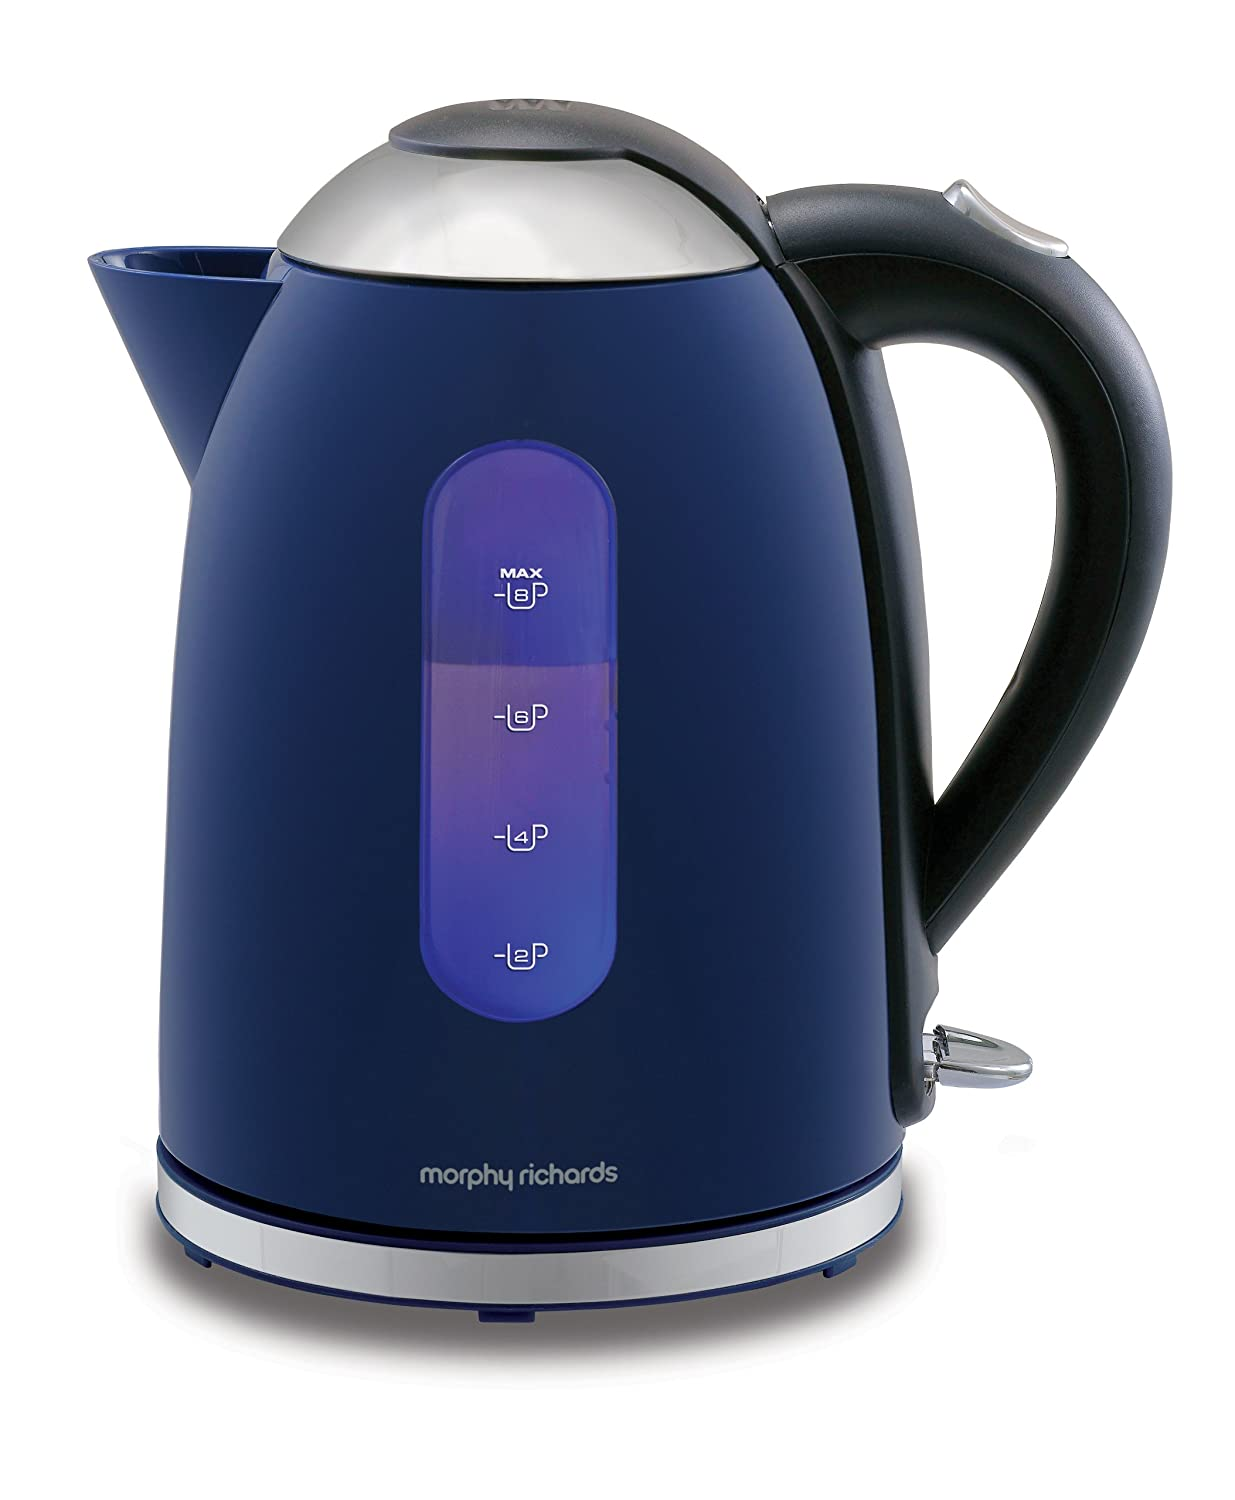 5l accents range only electricals co uk small kitchen appliances - Morphy Richards Accents 43170 Jug Kettle Blue Amazon Co Uk Kitchen Home